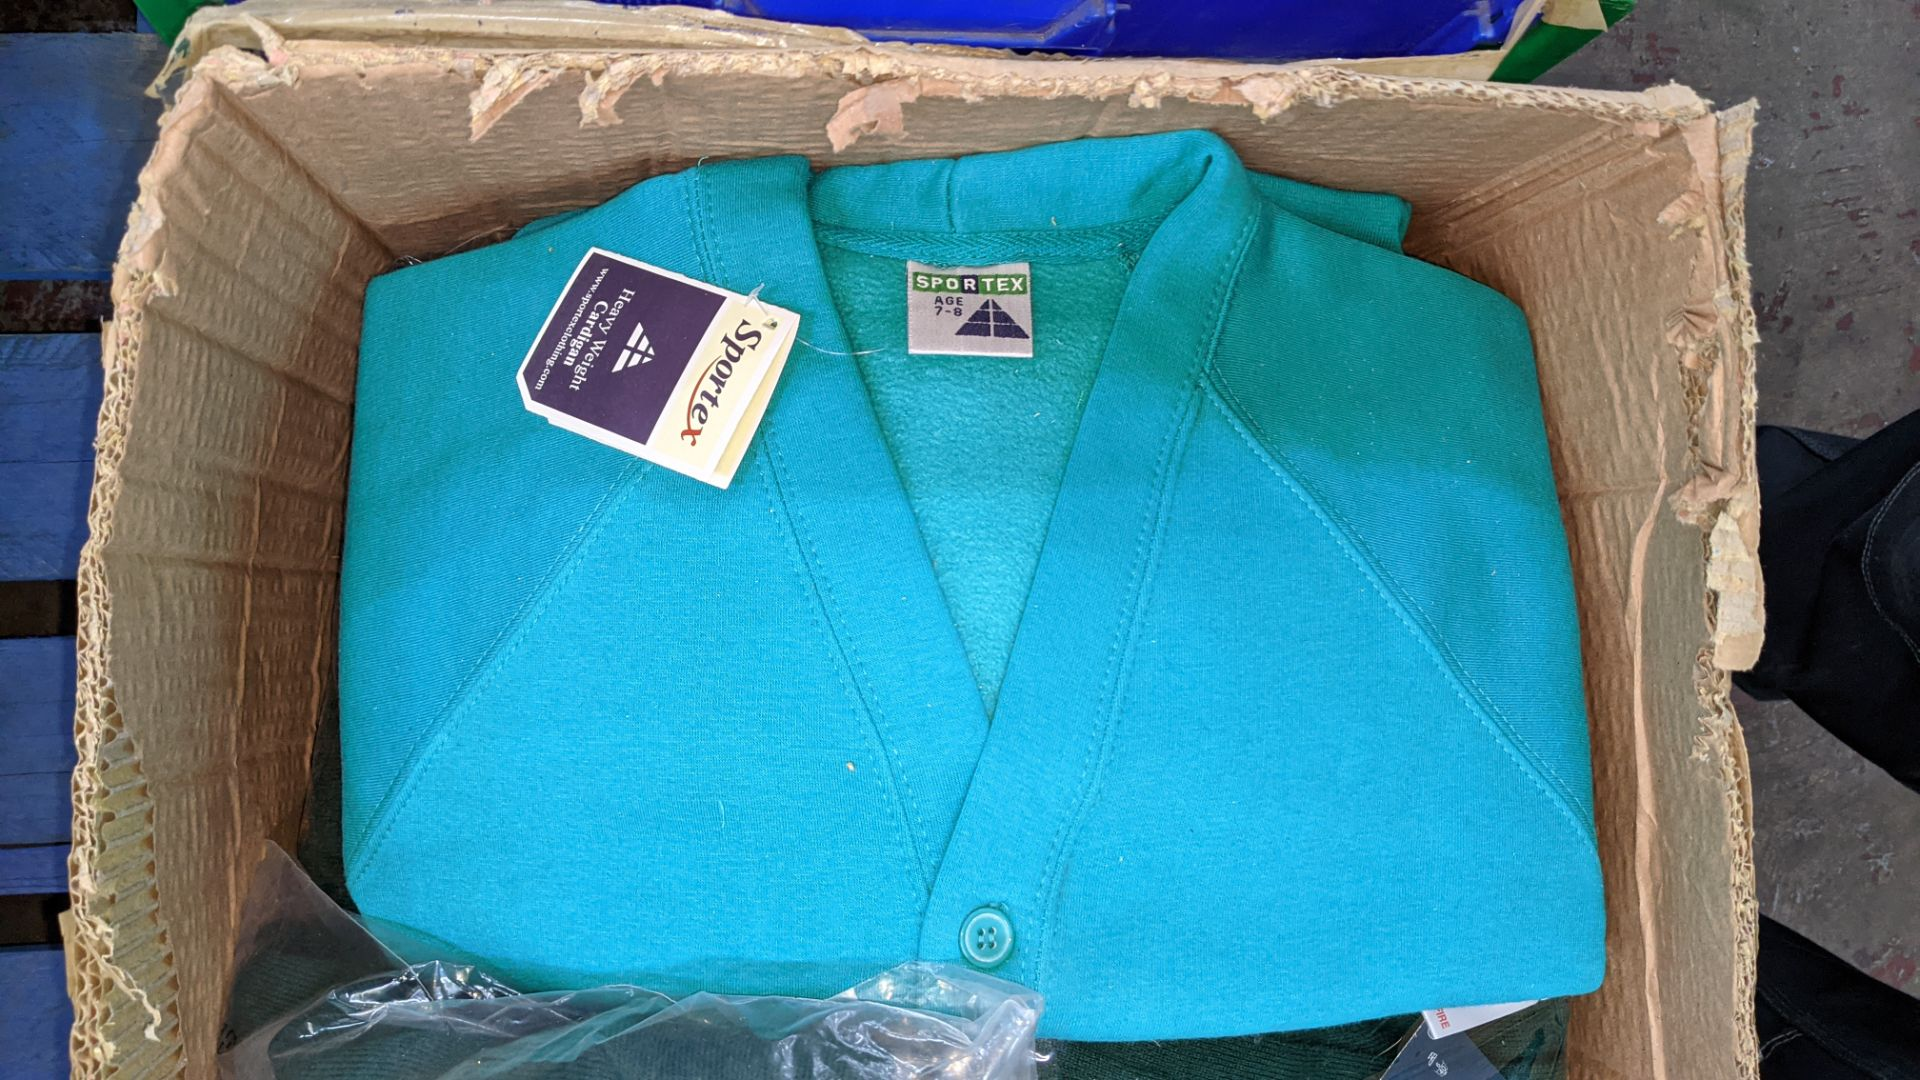 Approx 18 off Rowlinson children's green button up sweat tops - 1 large box - Image 4 of 6